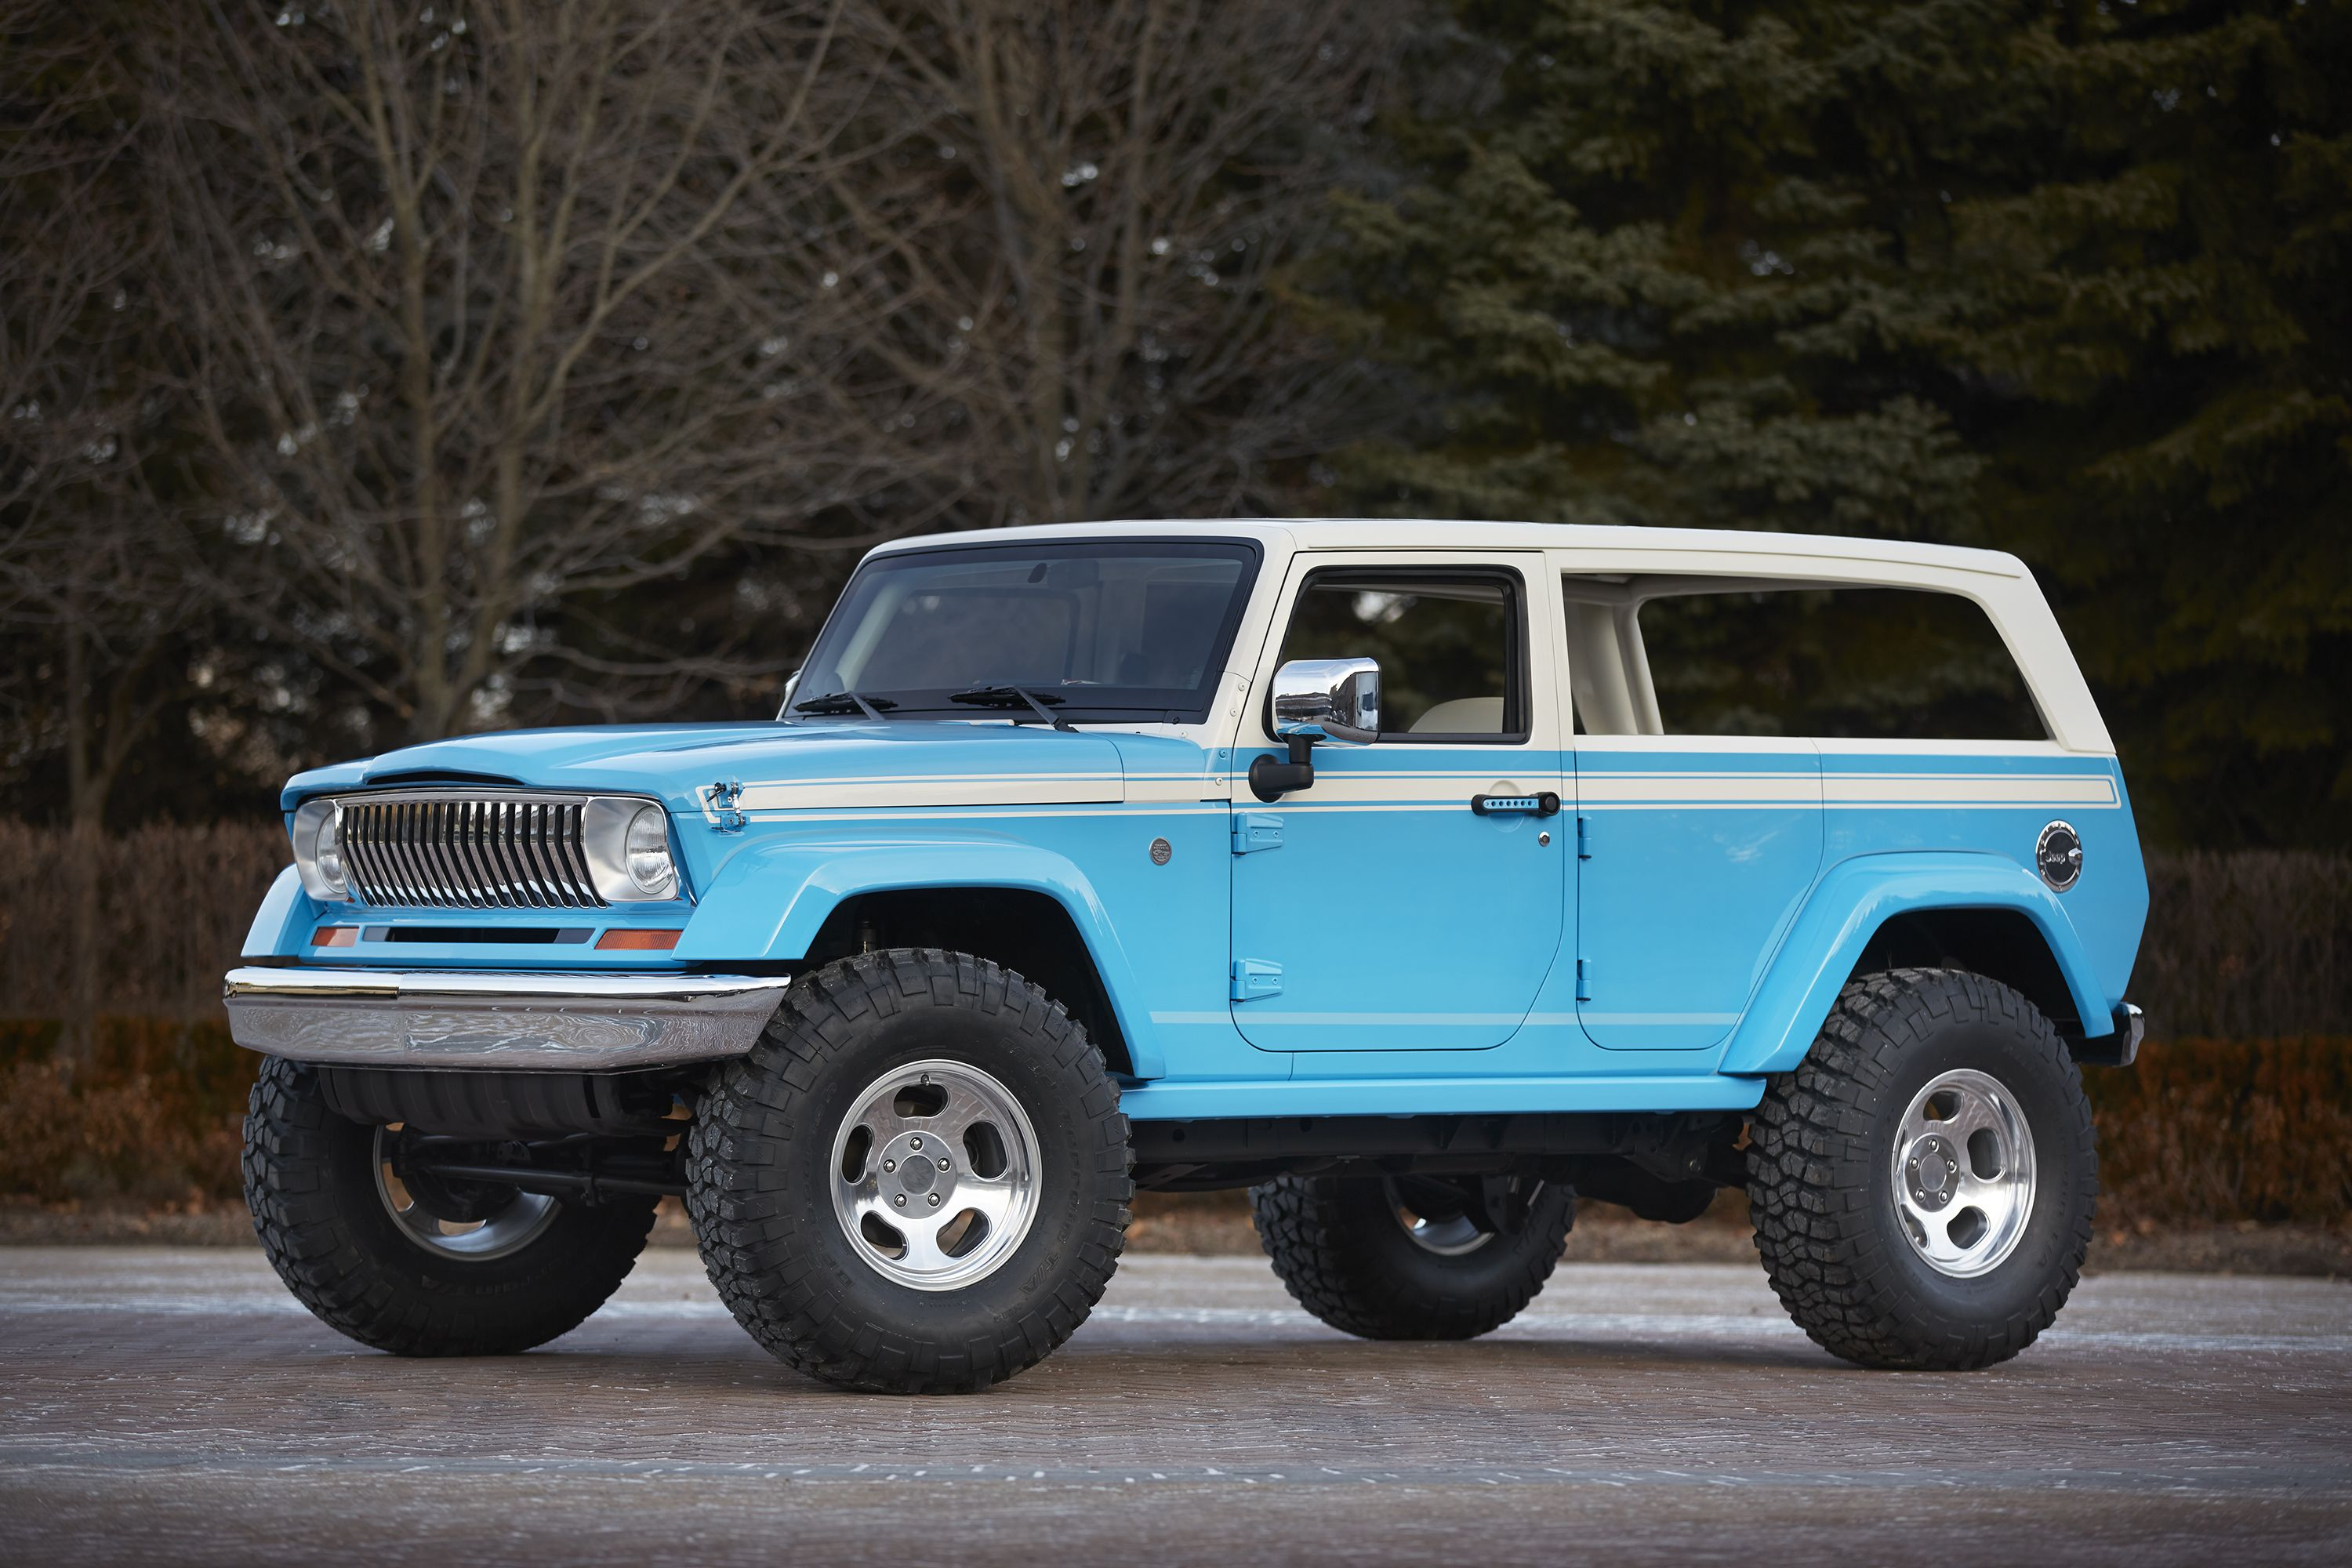 Concept Car Jeep Chief | Concept Car: Jeep® Chief | Pinterest ...